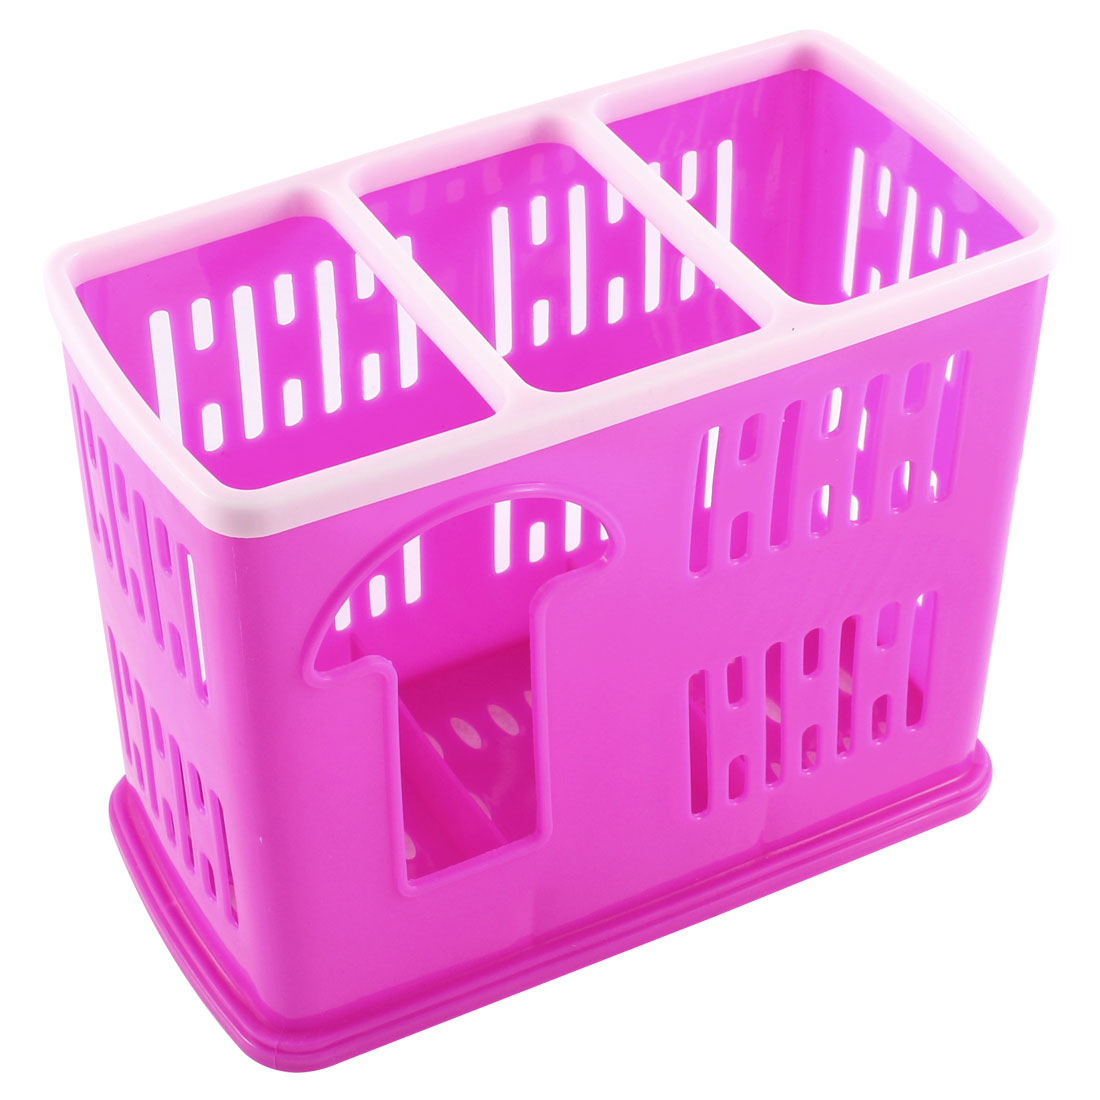 Kitchen 3 Compartments Hollow Out Chopsticks Spoon Case Holder Pink